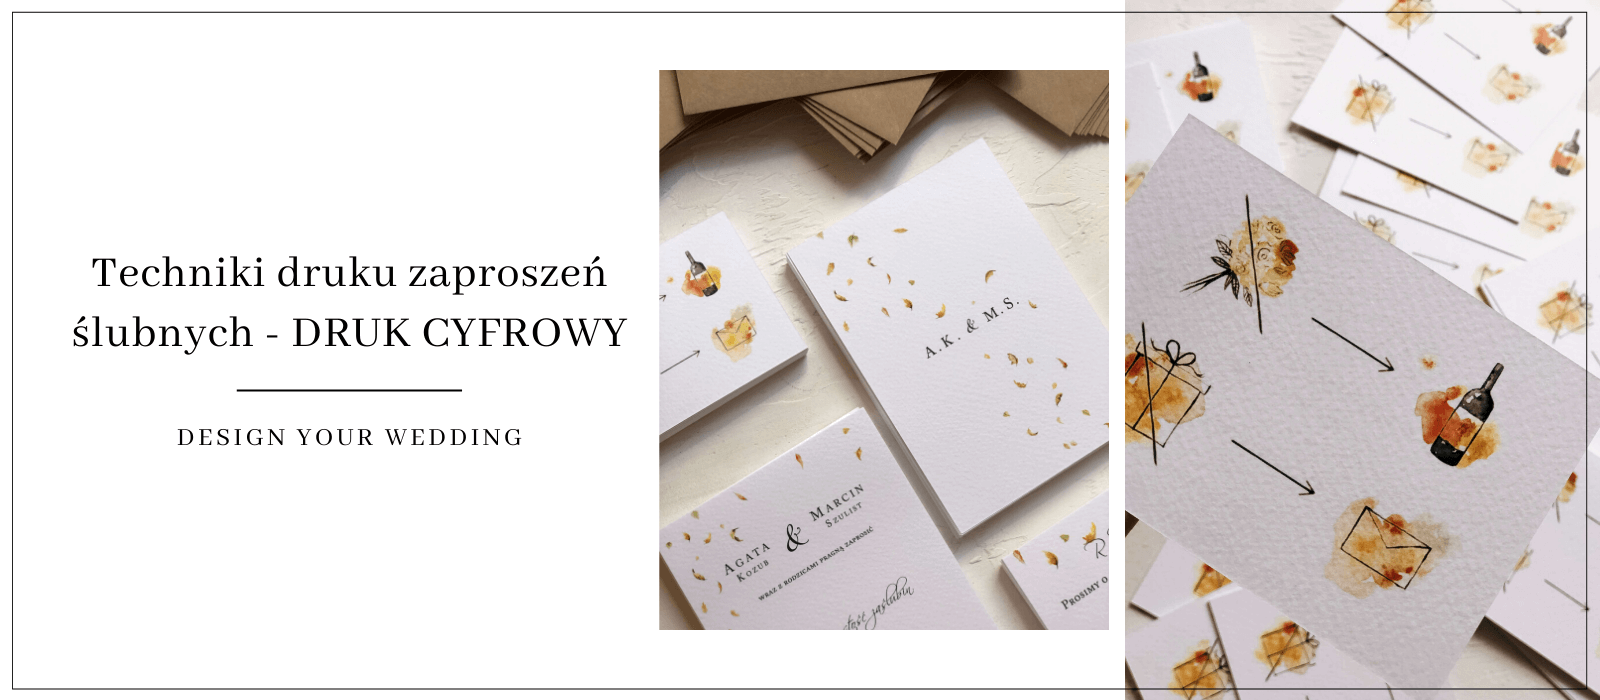 ZAPROSZENIA NA ŚLUB DESIGN YOUR WEDDING